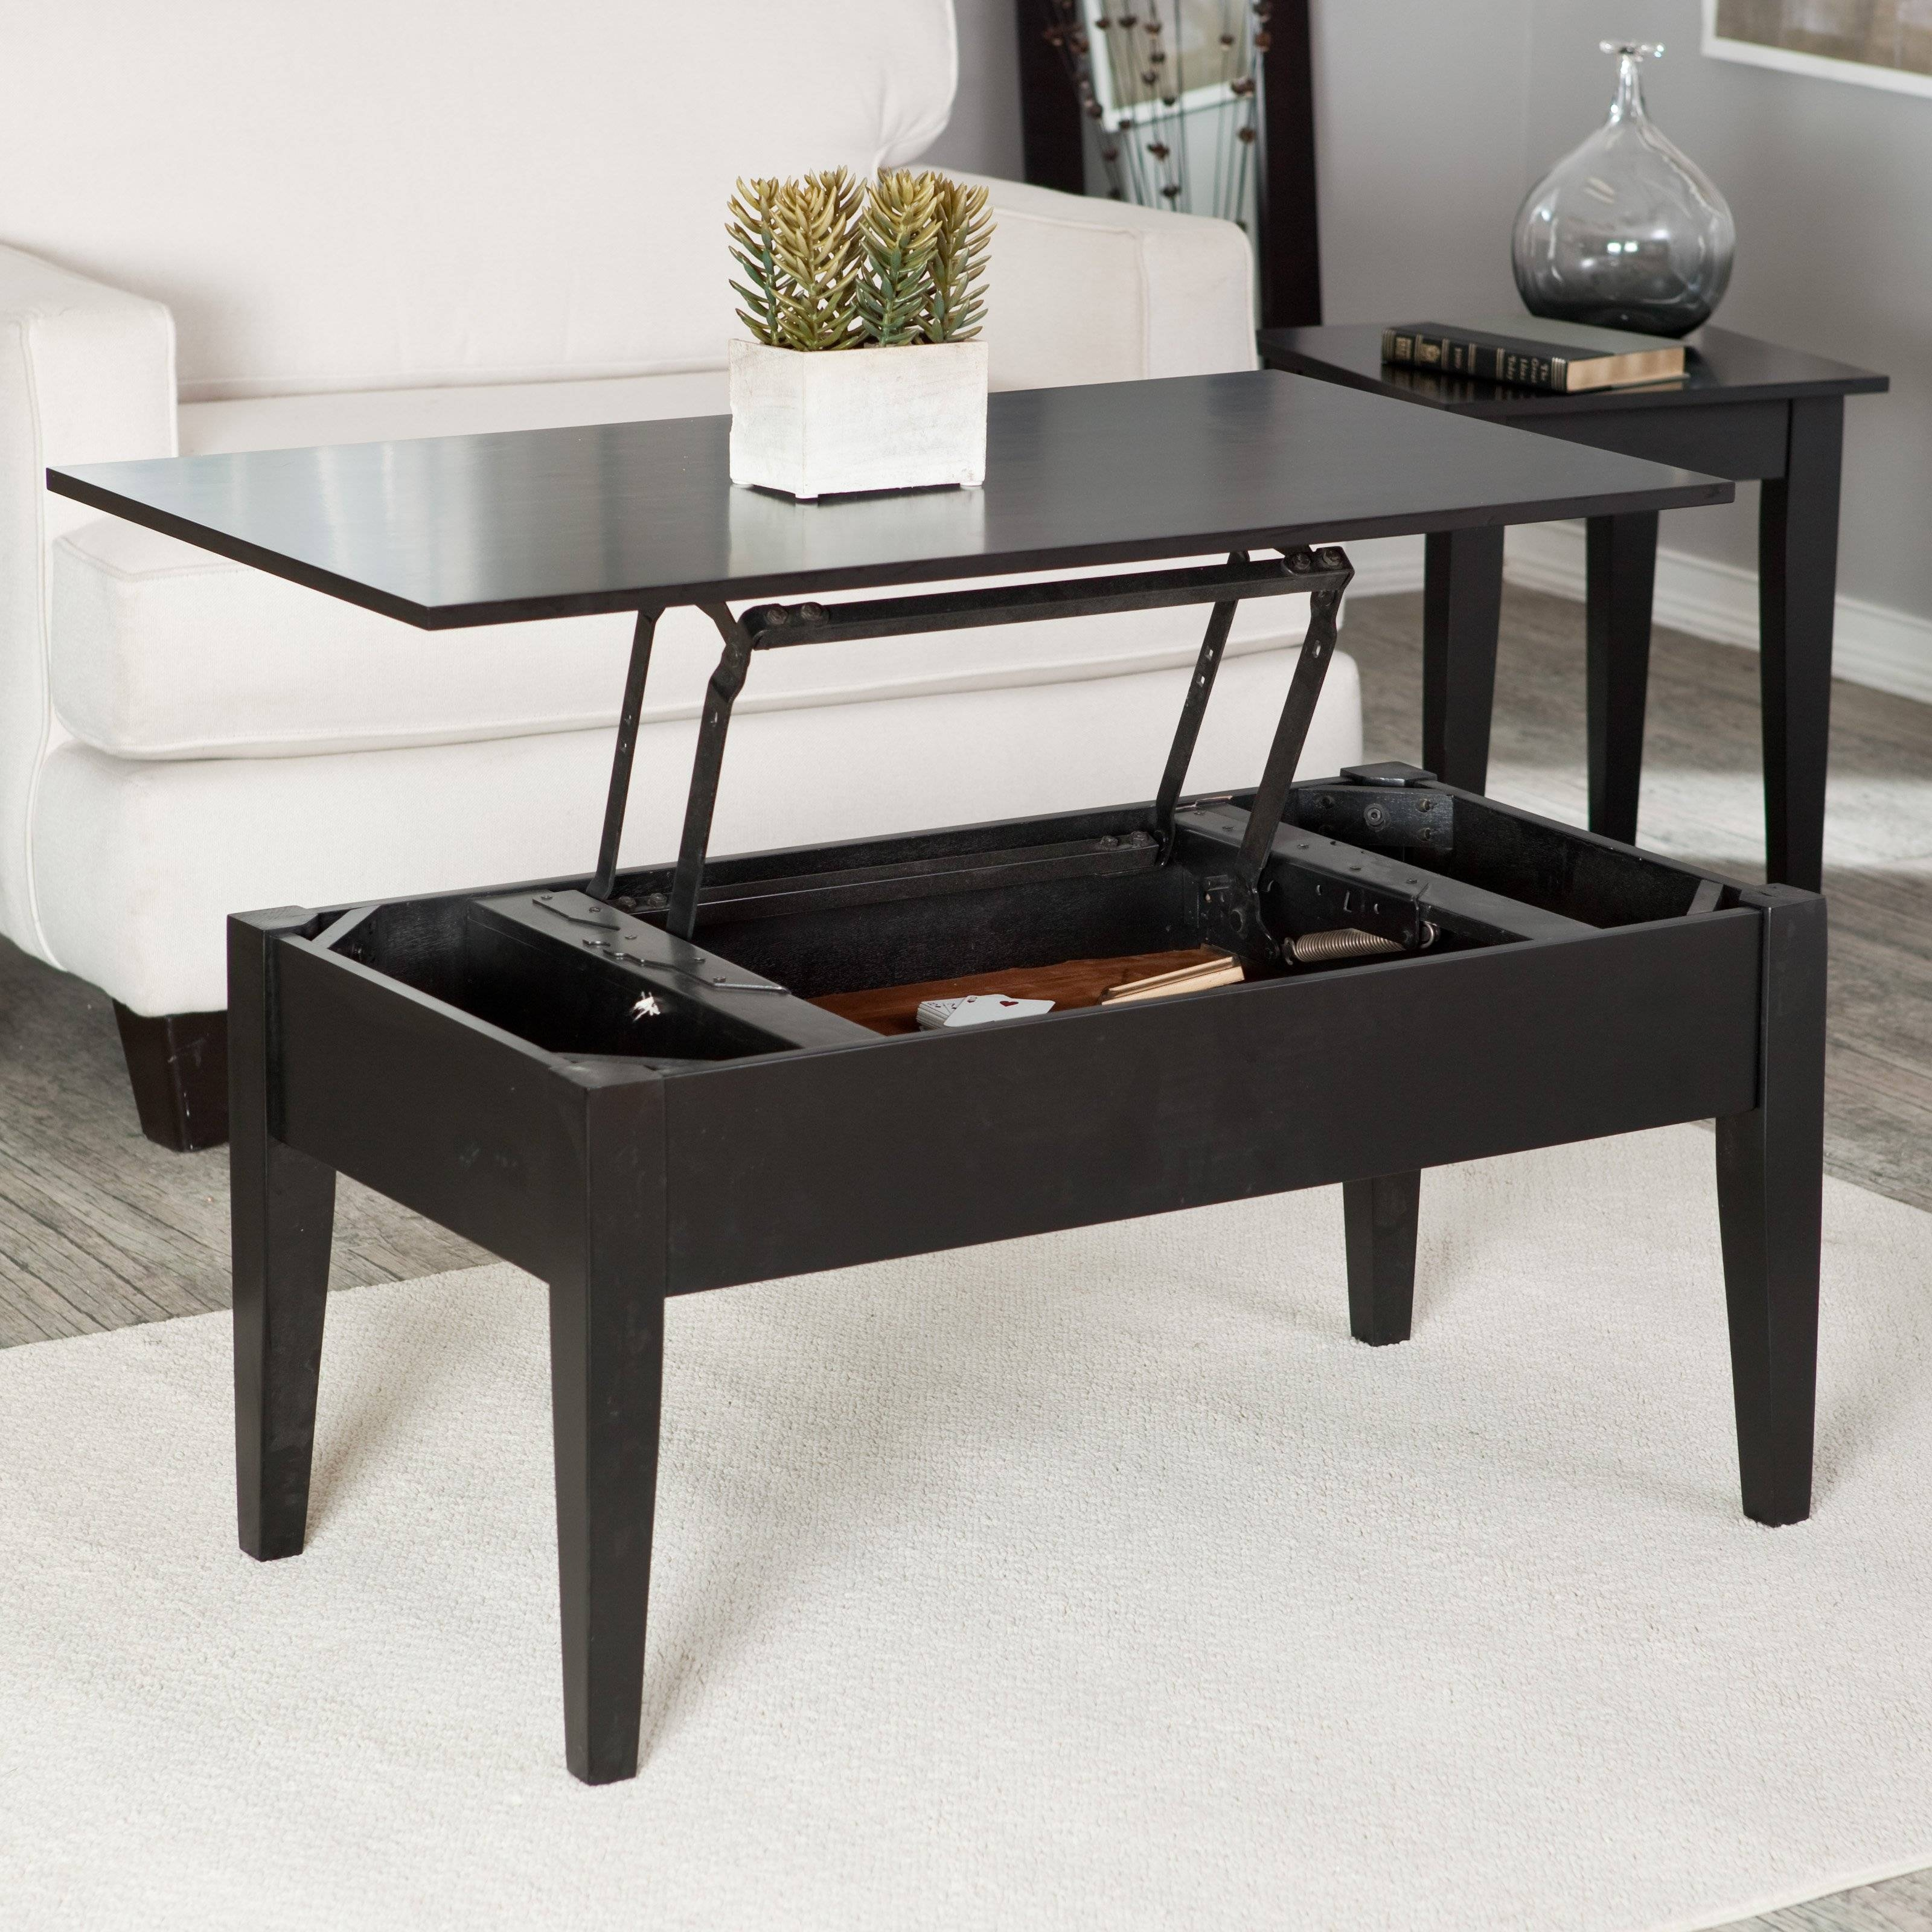 Turner Lift Top Coffee Table - Espresso | Hayneedle in Lift Top Coffee Tables (Image 24 of 30)